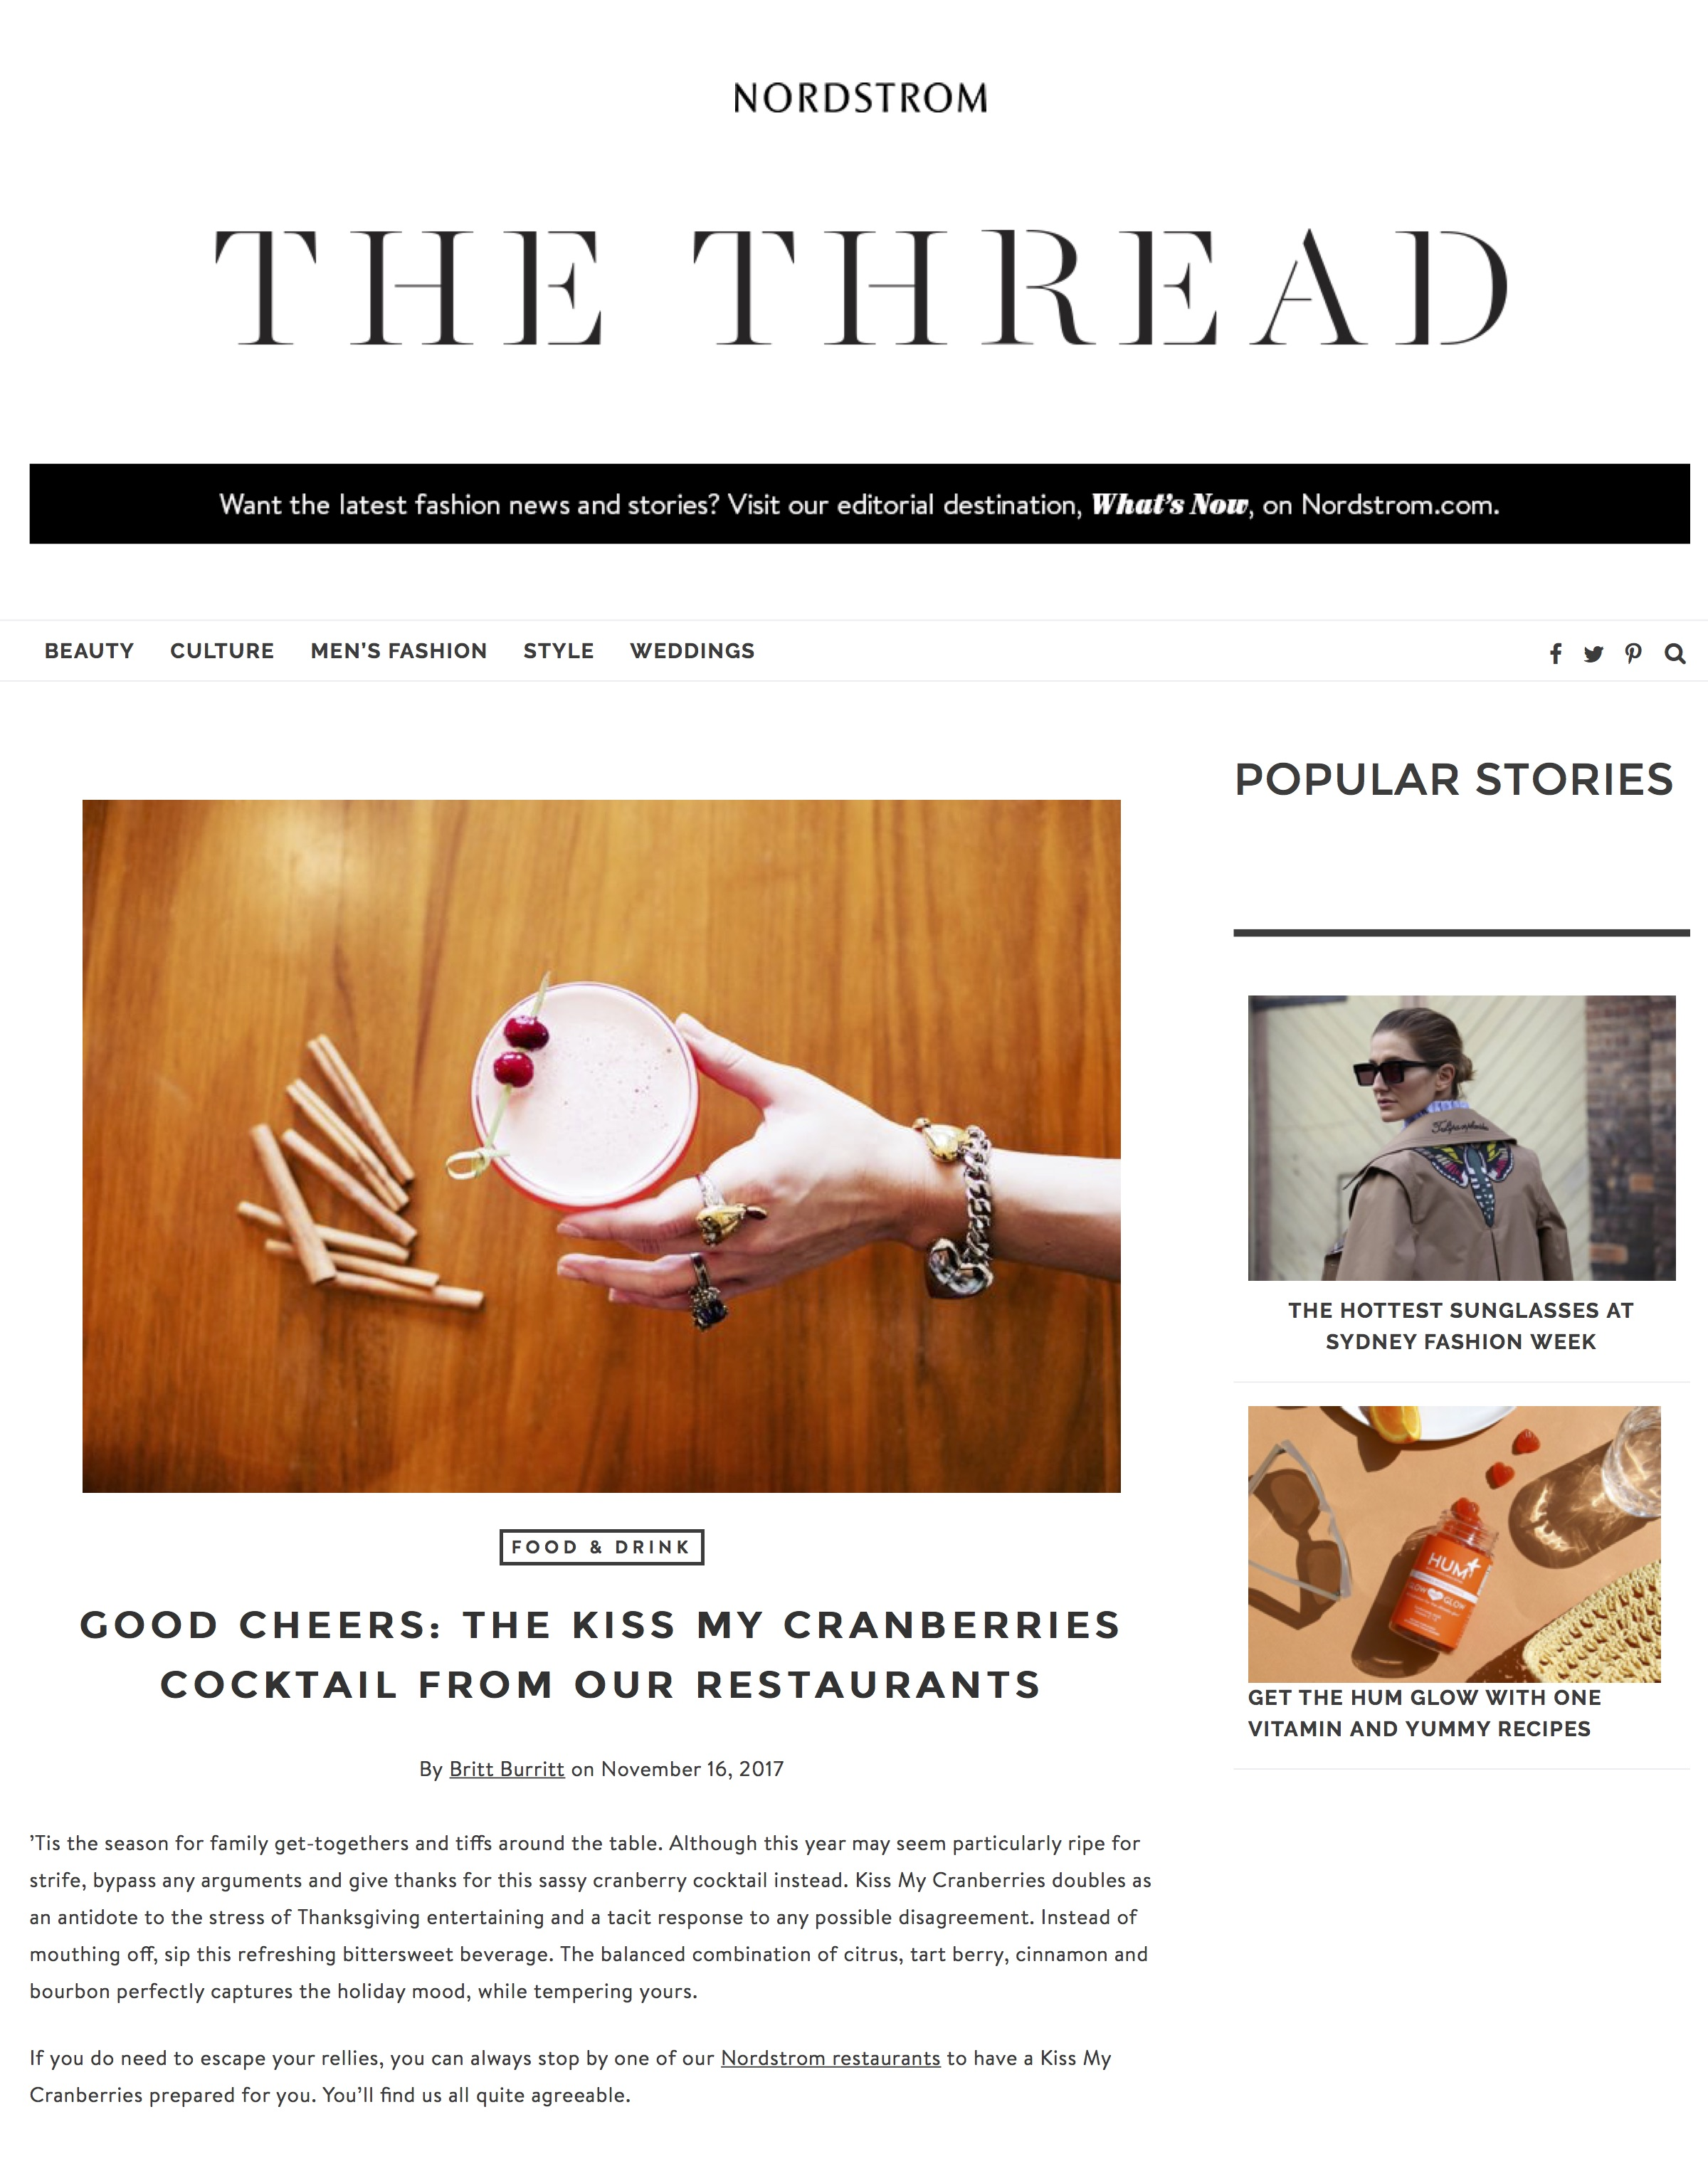 Good Cheers: Kiss My Cranberries Cocktail | Nordstrom Fashion Blog.jpg